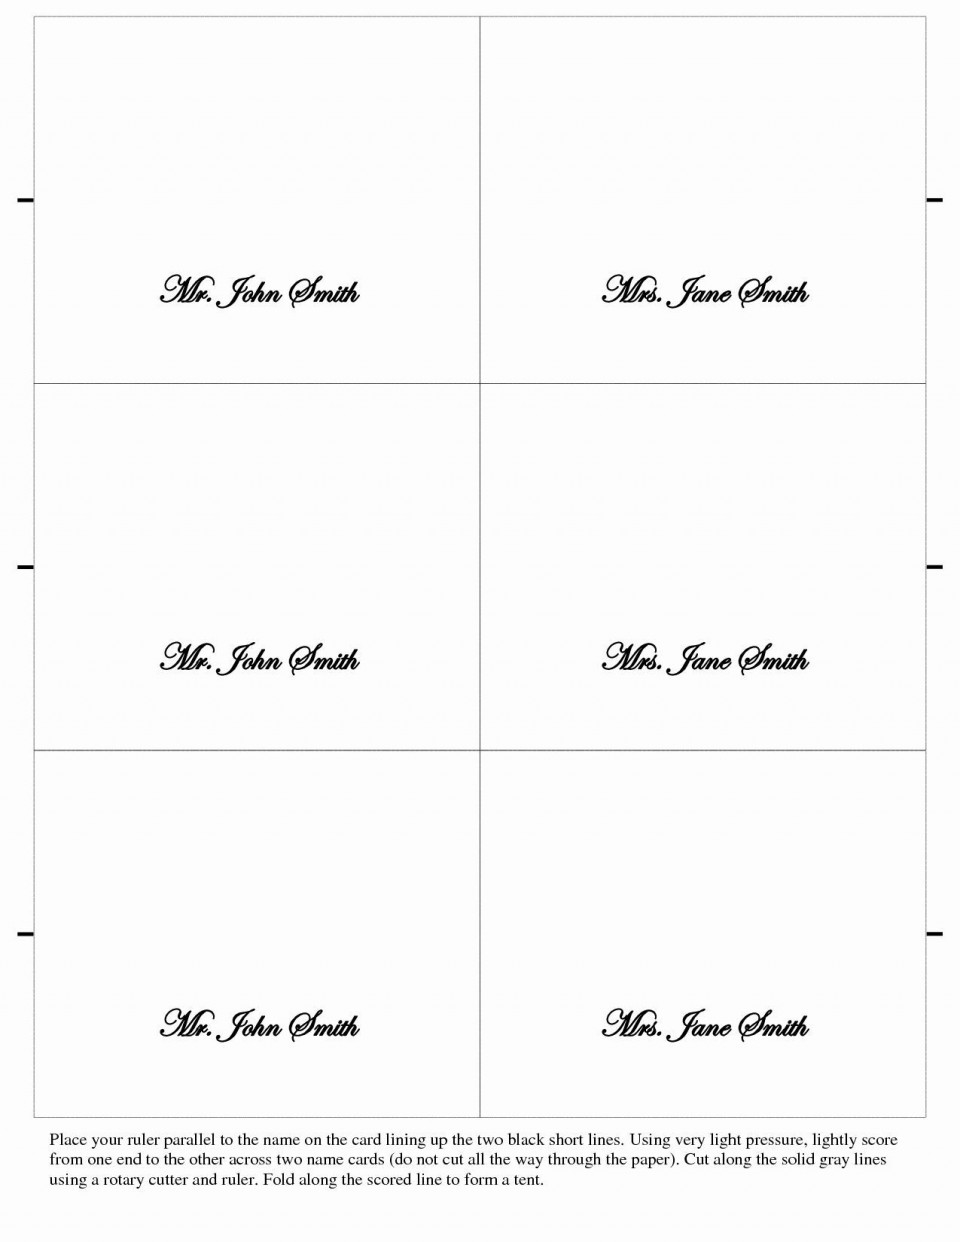 006 Surprising Place Card Template Word High Resolution  Free Name Folding Microsoft Table960